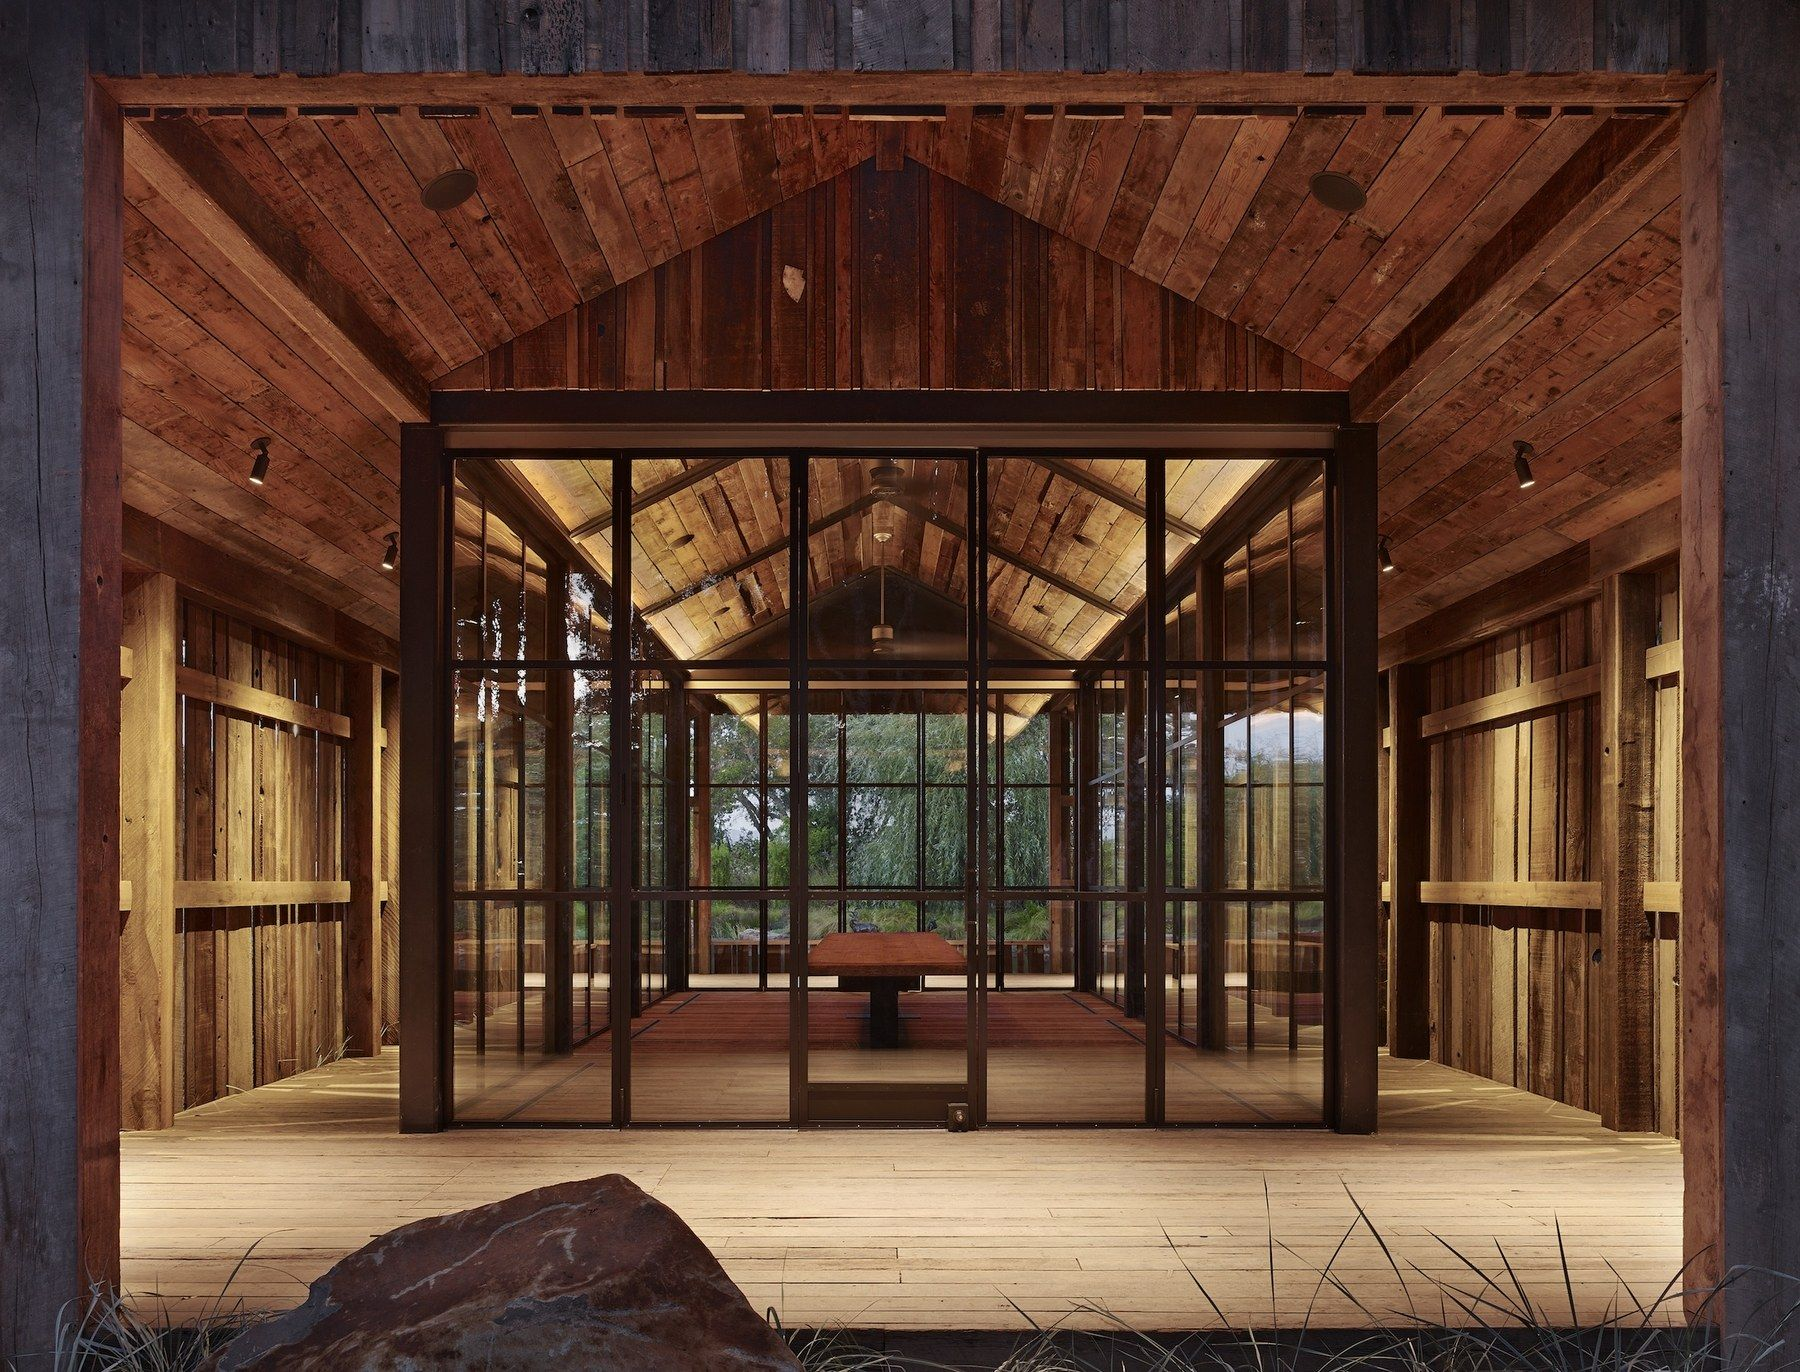 An Enclosed Glass Dining Area Stands Within This Wood Structure